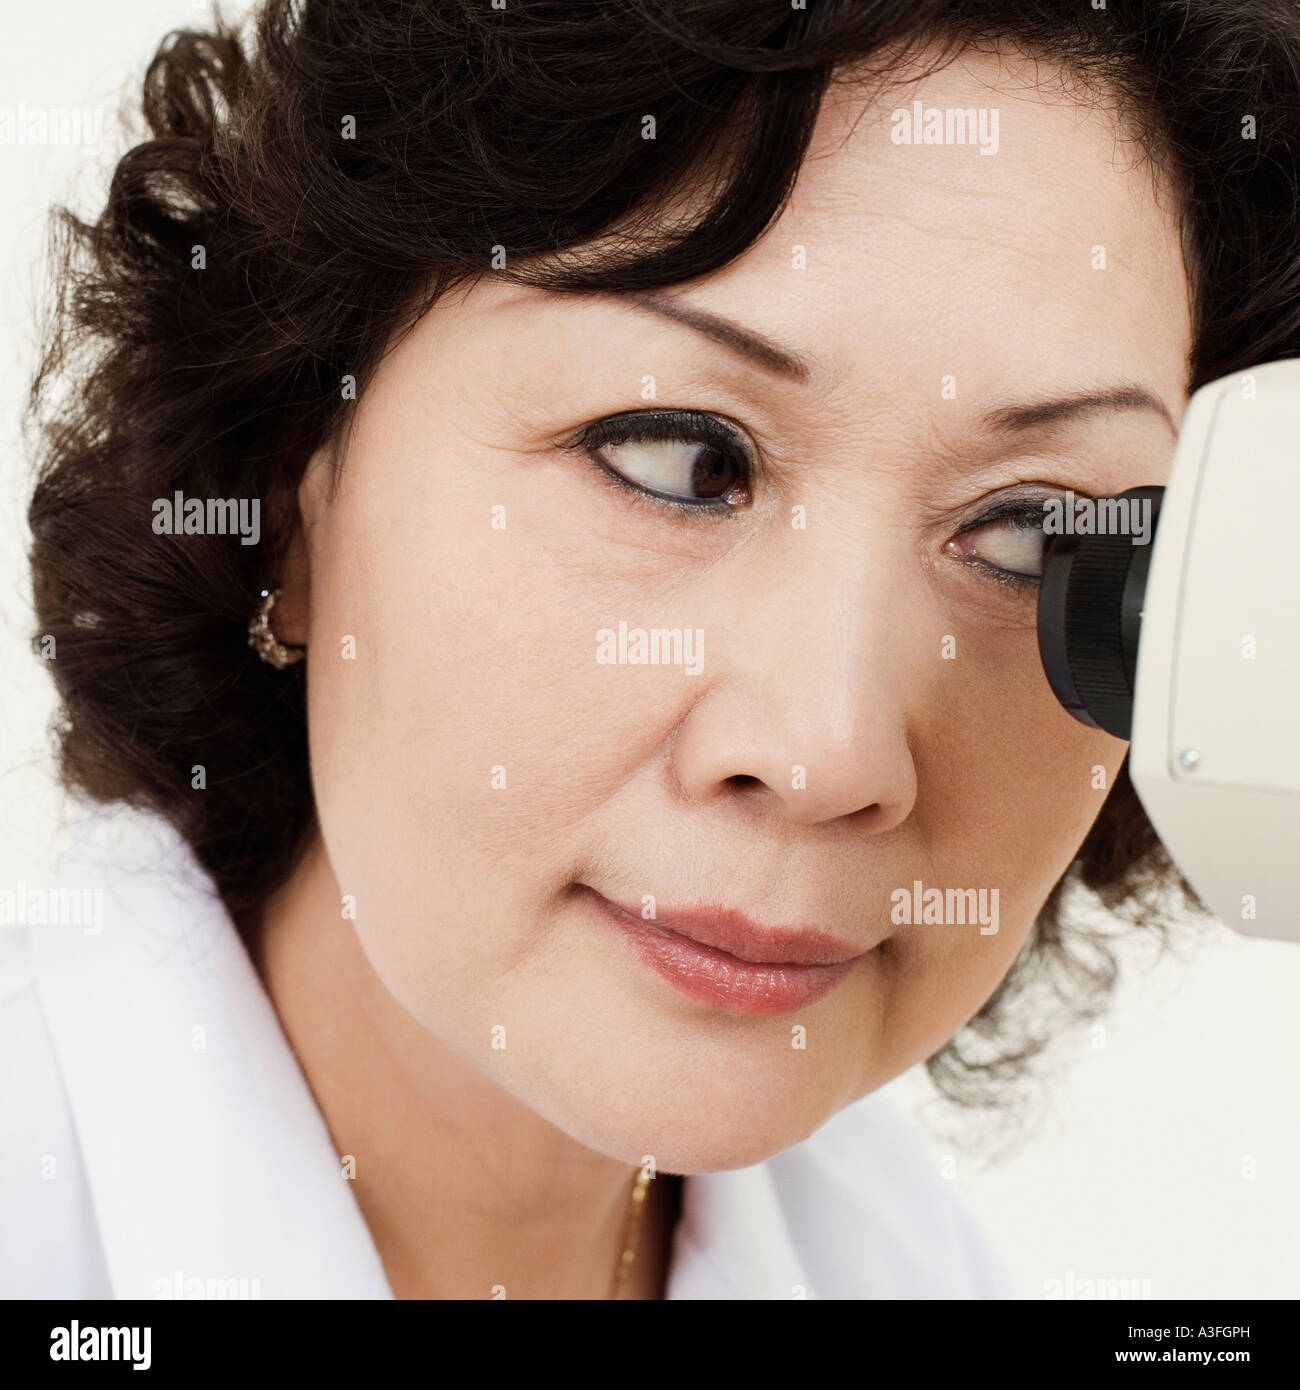 Close-up of an optometrist looking into an ophthalmoscope - Stock Image